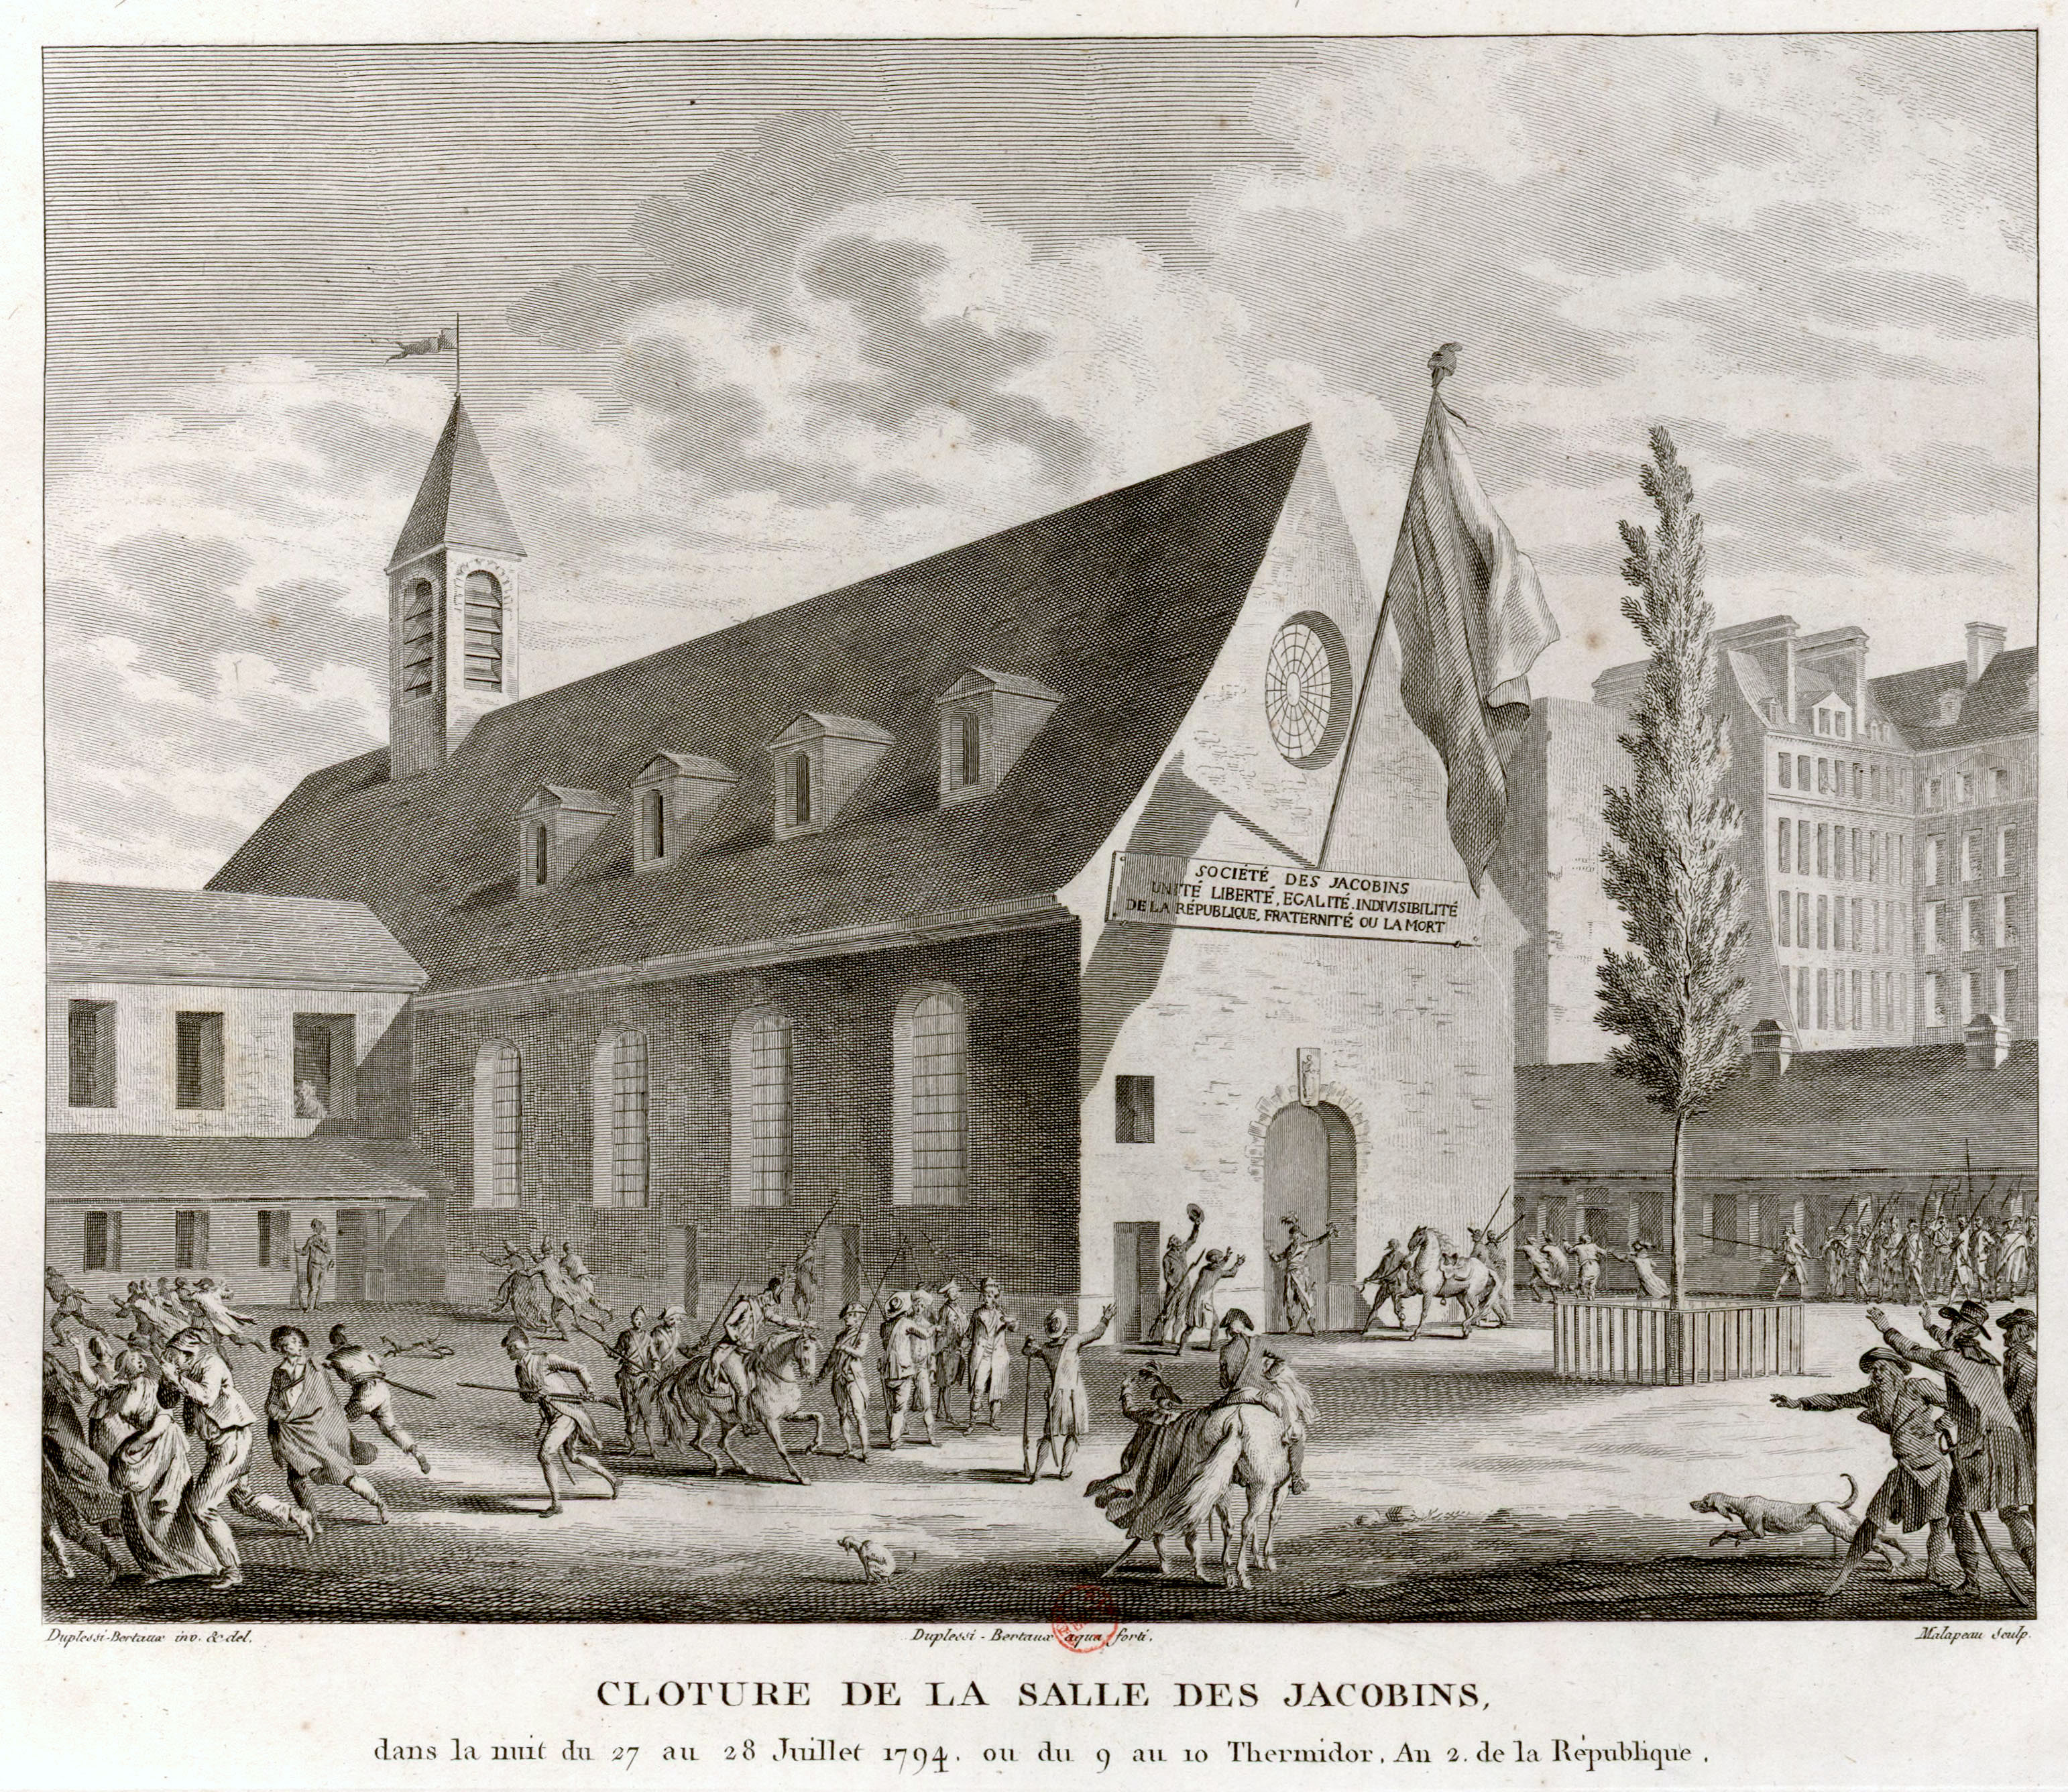 Claude Nicolas Malapeau: Closing of the Jacobin Club, during the night of 27-28 July 1794, or 9-10 Thermidor, year 2 of the Republic